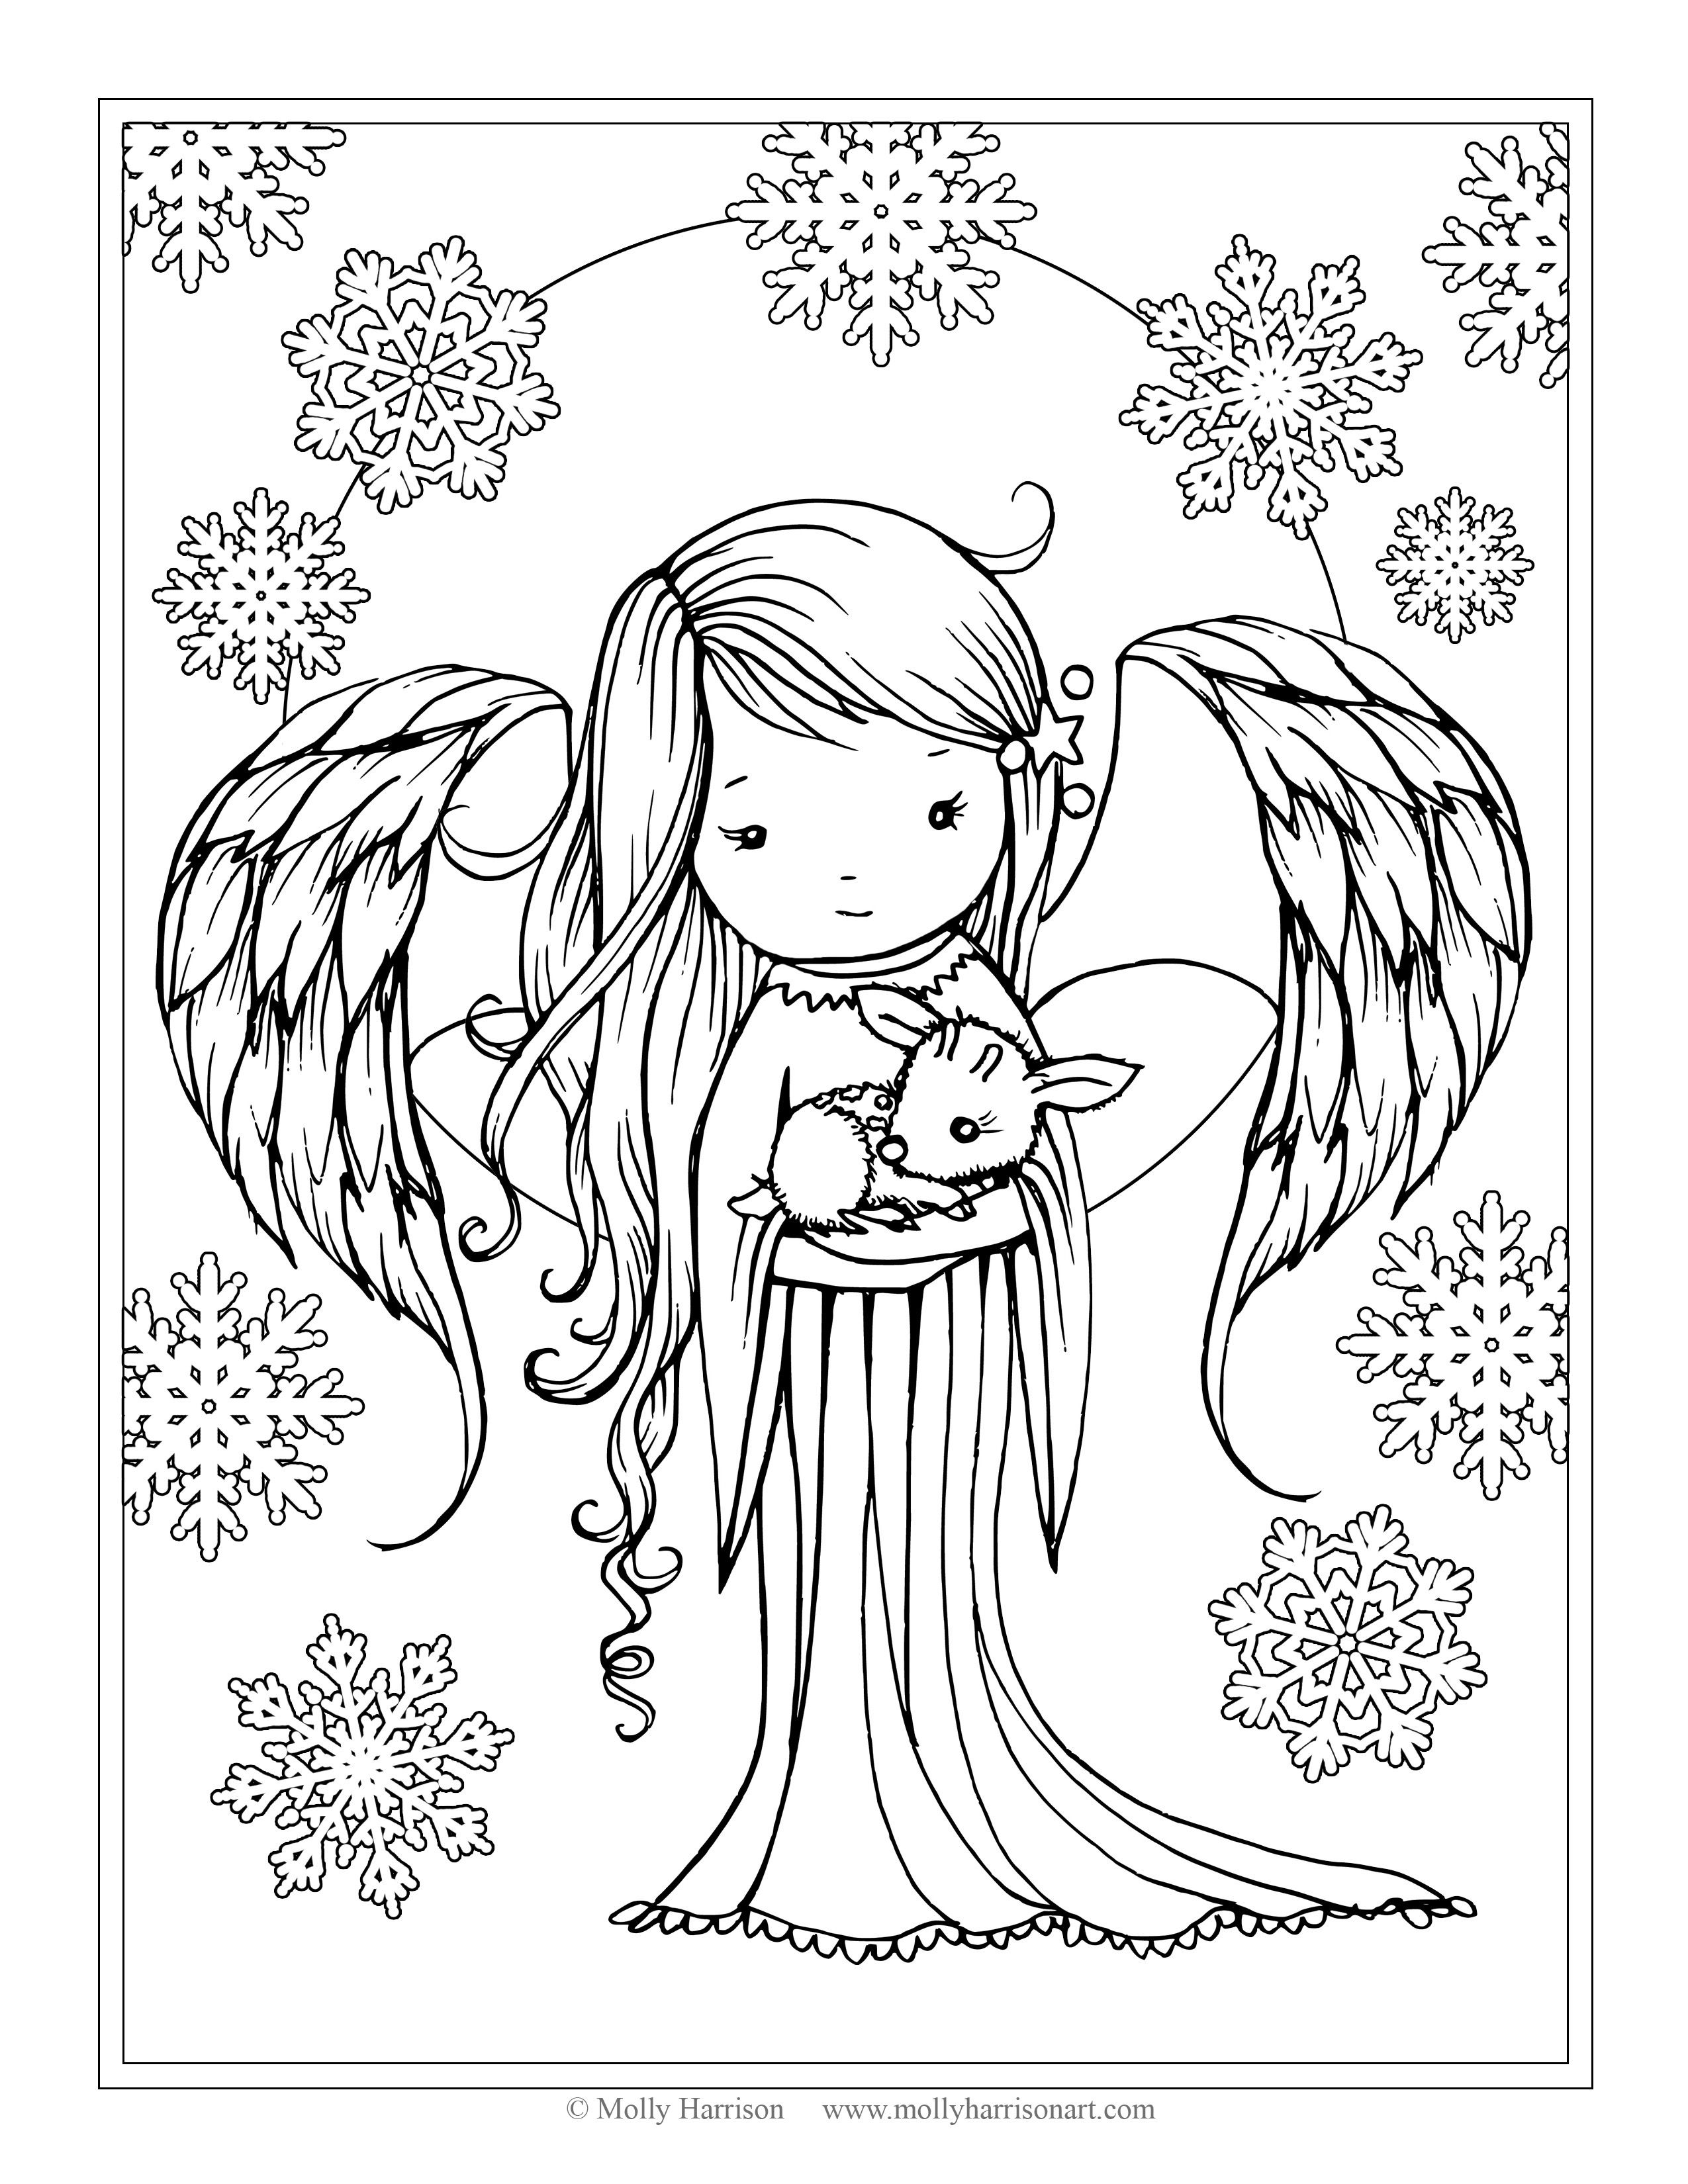 Angel Holding Fawn From The Book Whimsical Winter Wonderland